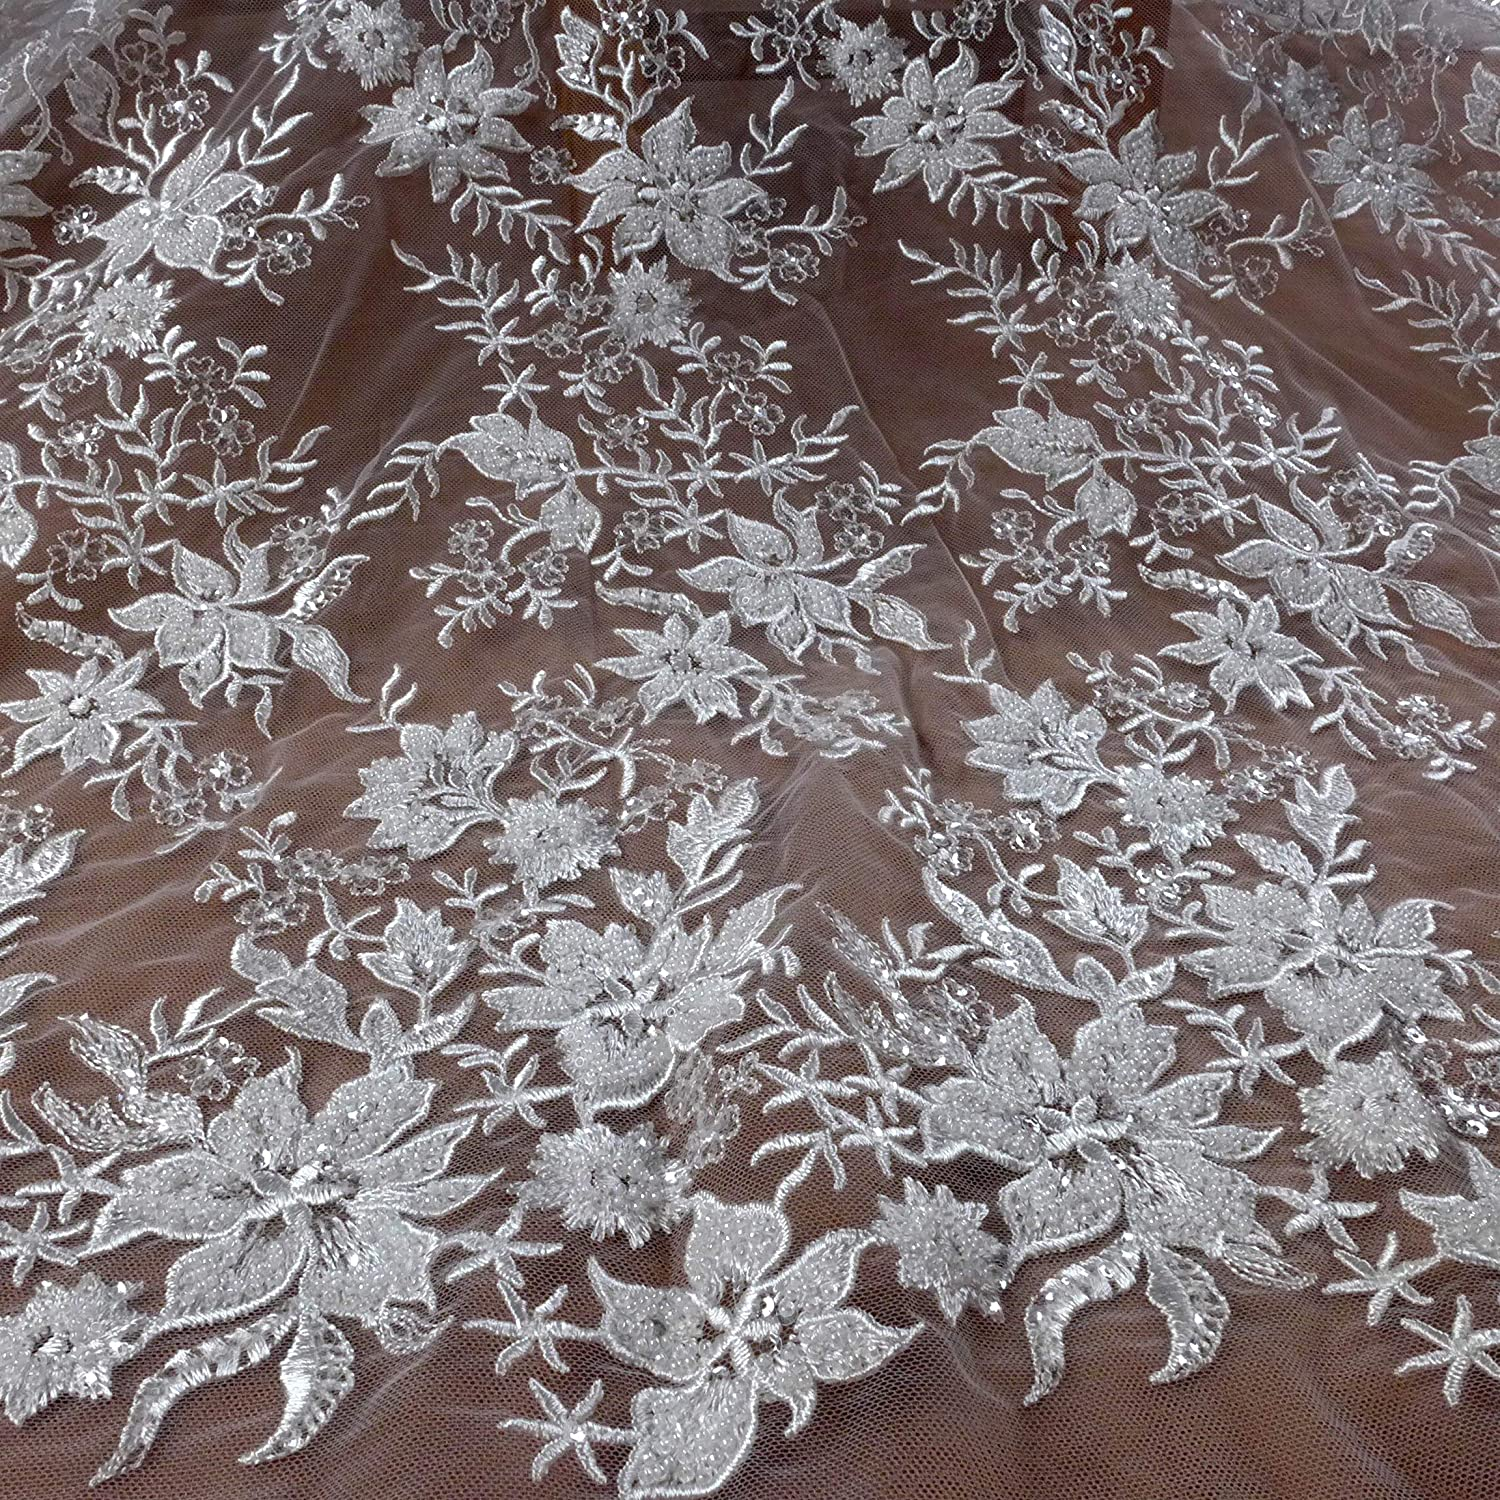 Fresno Mall Heavy Beaded Wedding Dress Cheap super special price lace Fabric Beads White Off Sequins l